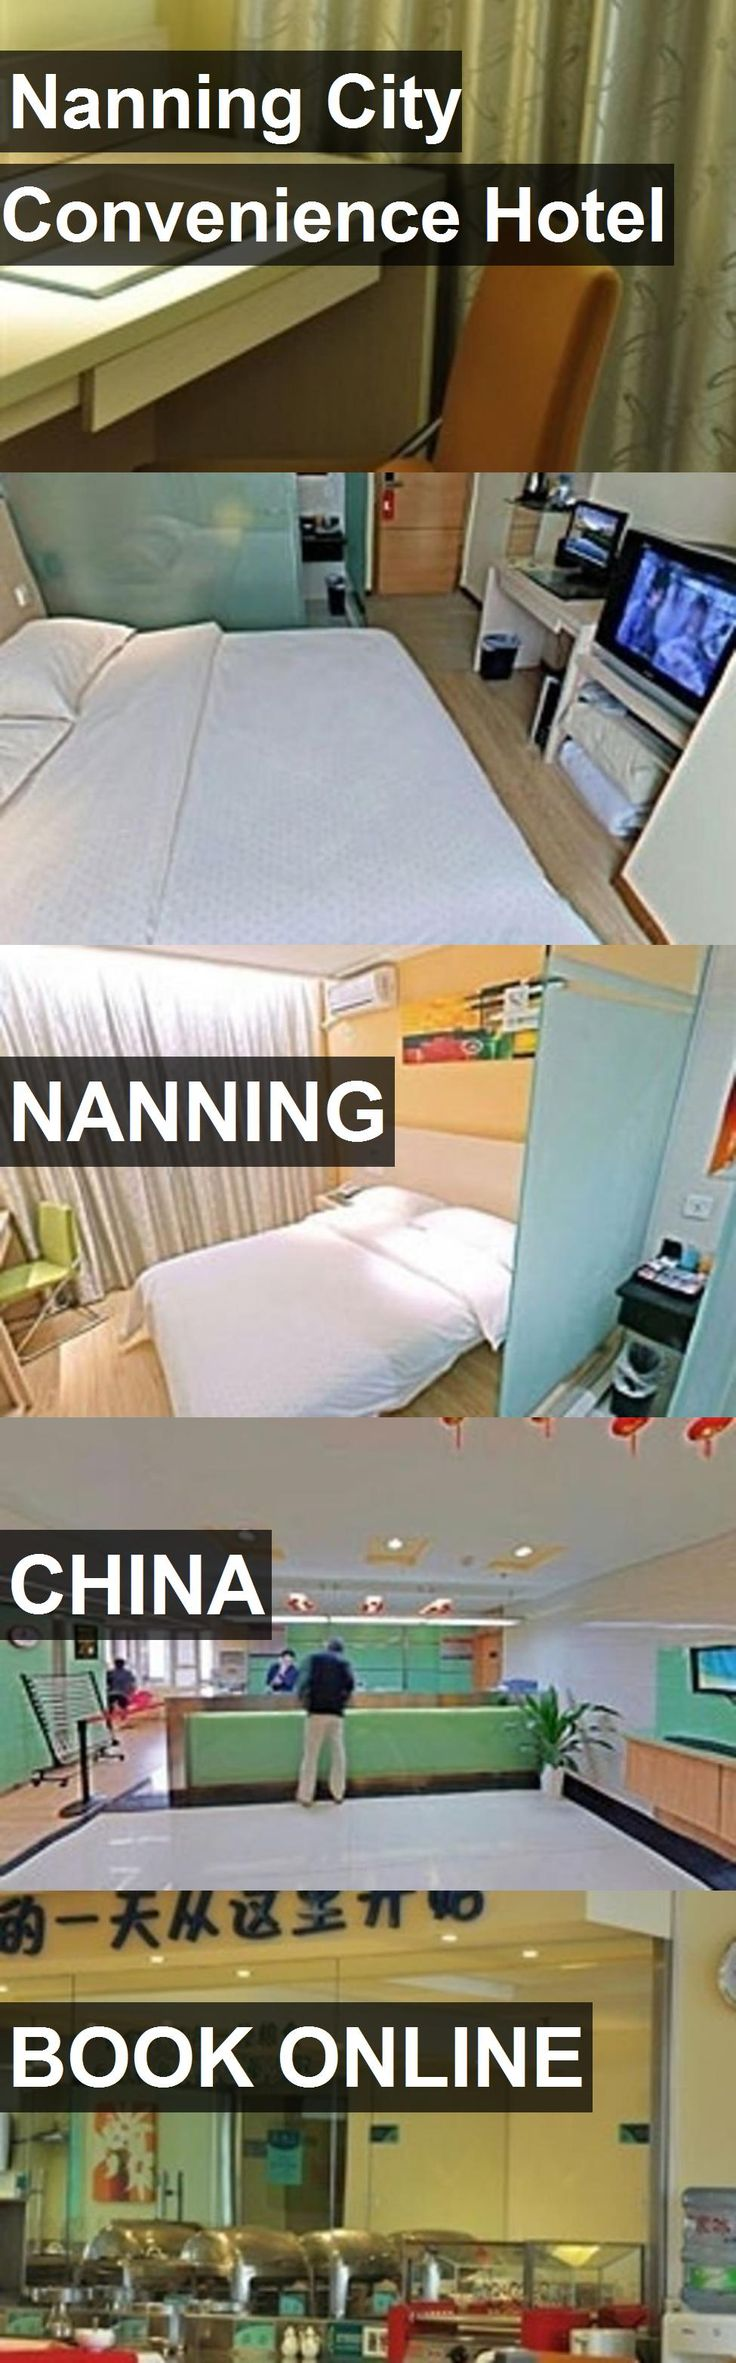 Hotel Nanning City Convenience Hotel in Nanning, China. For more information, photos, reviews and best prices please follow the link. #China #Nanning #NanningCityConvenienceHotel #hotel #travel #vacation